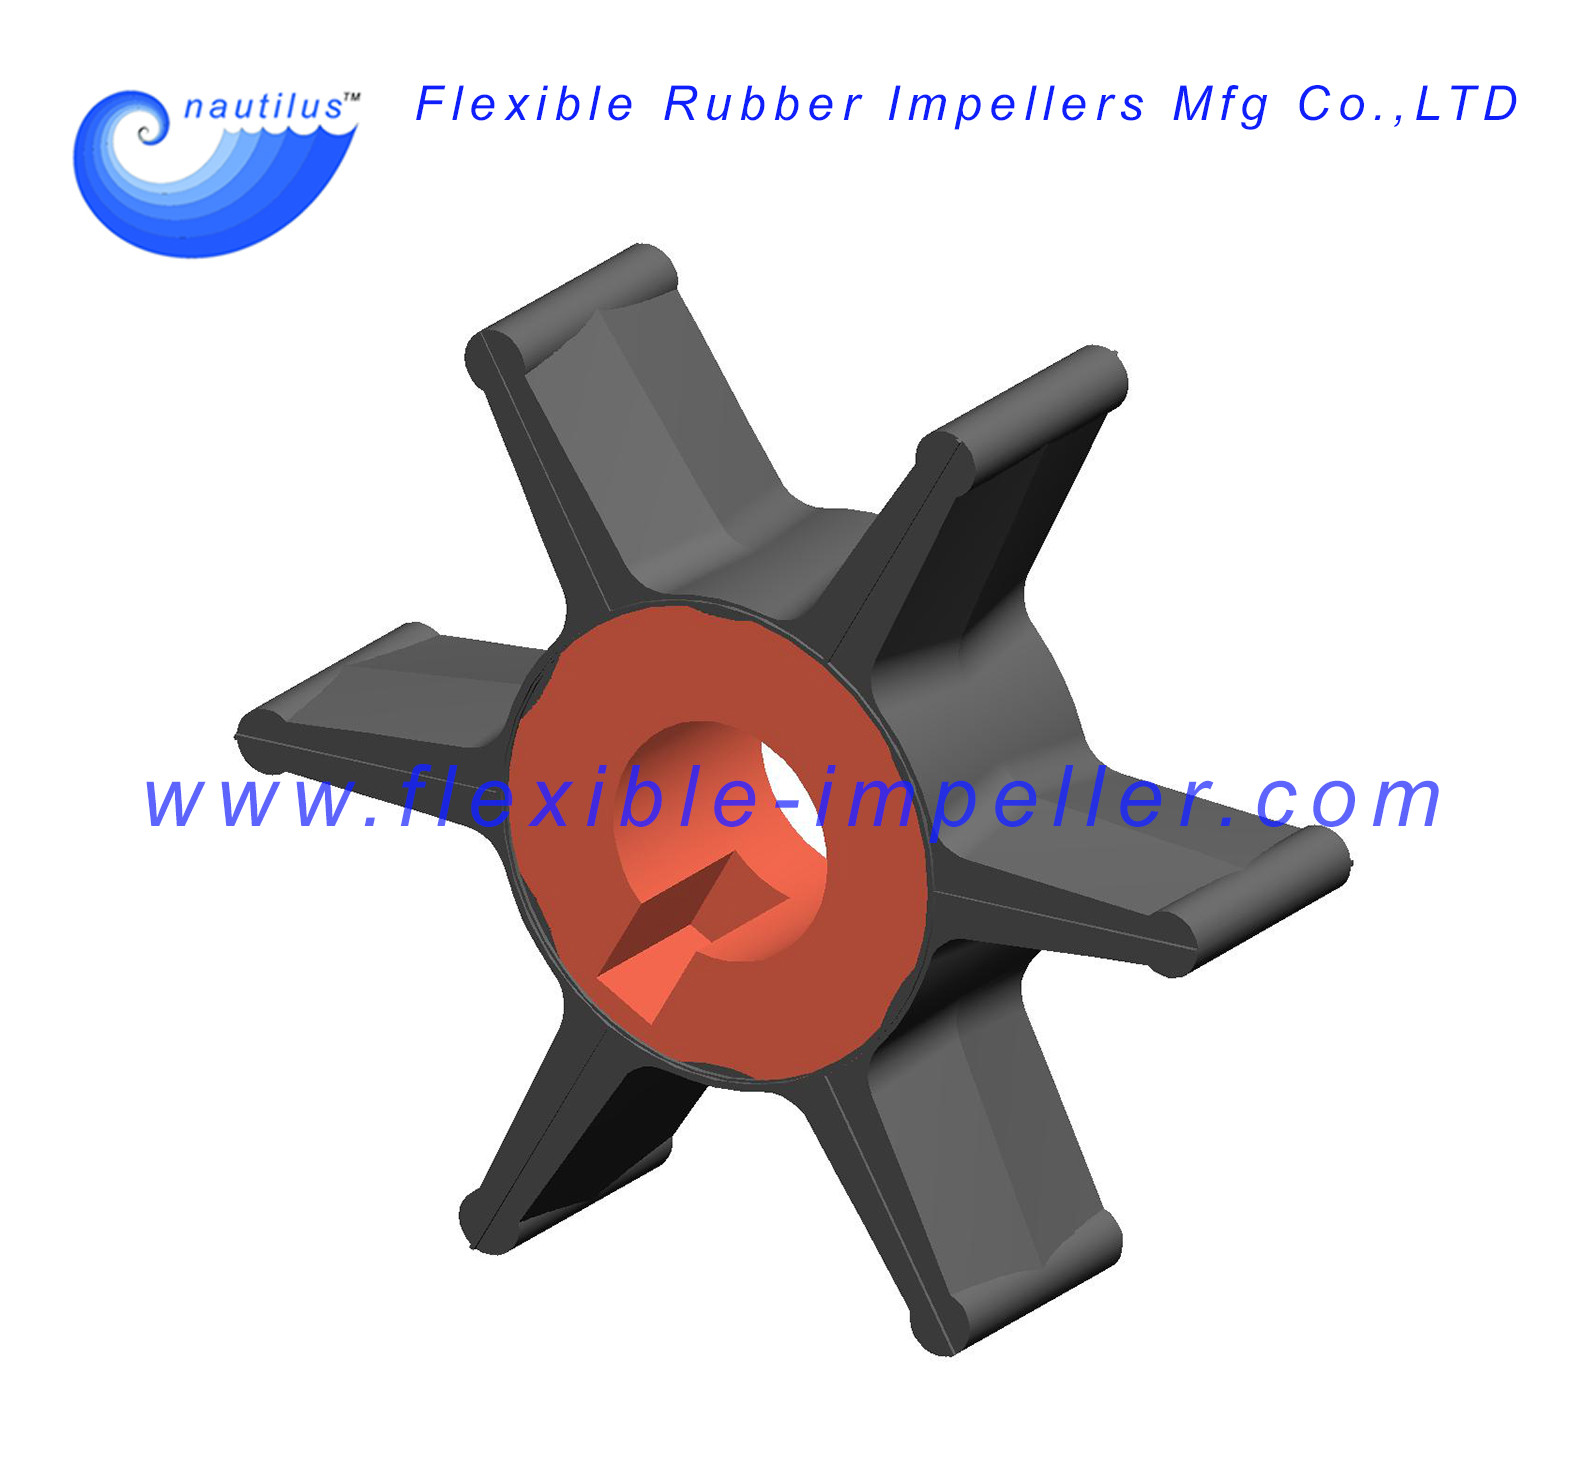 Chrysler/Force Outboard water pump Impeller 47-F436065-2